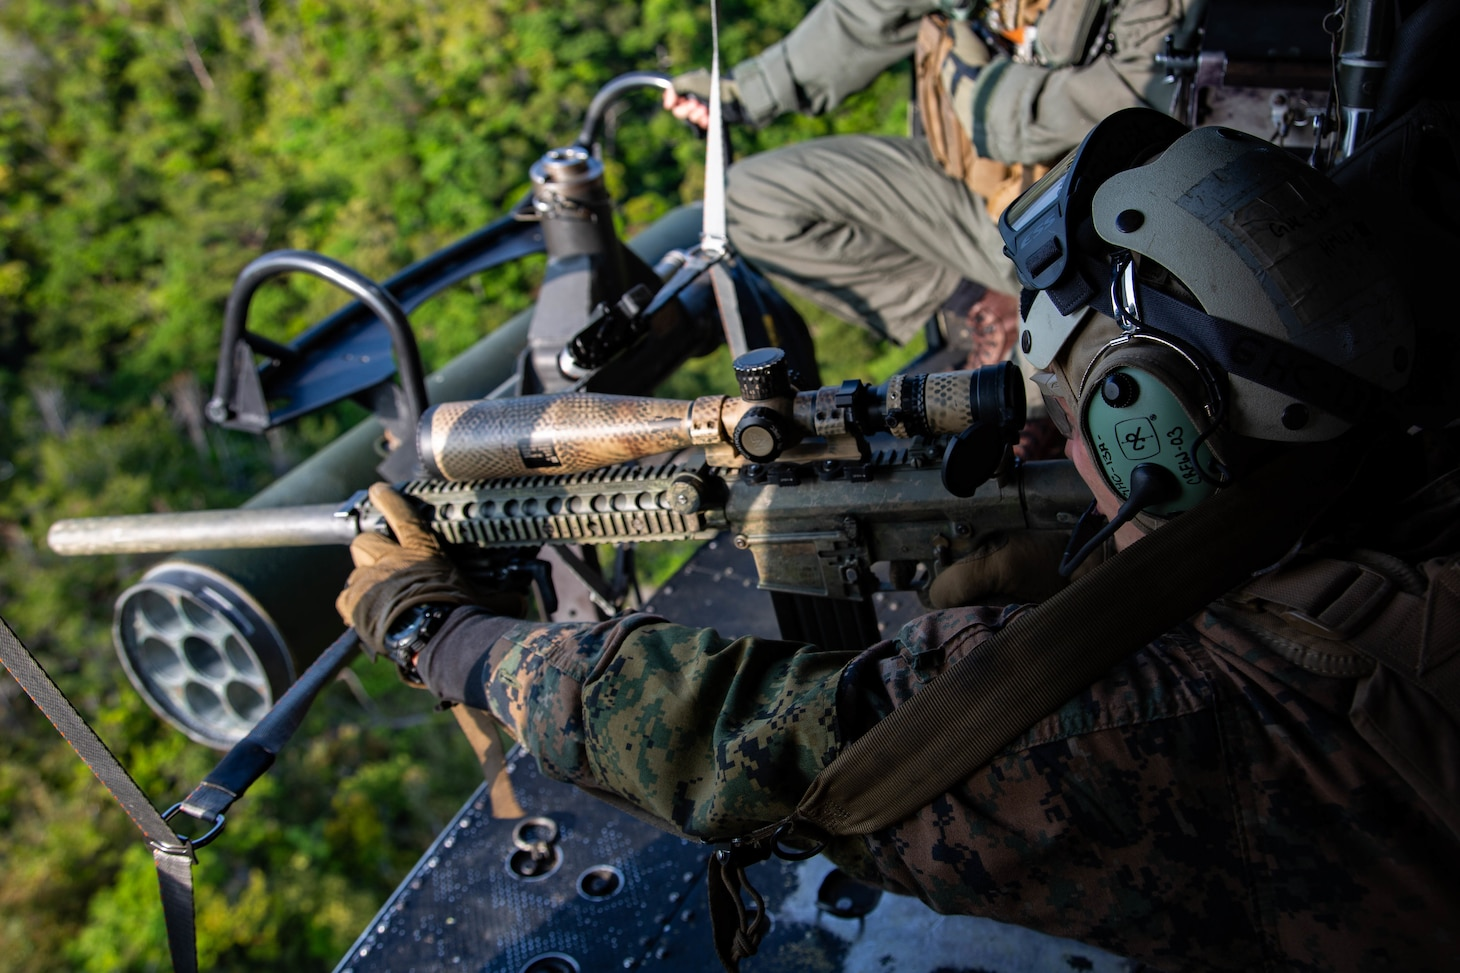 A machine gunner takes aim out of a helicopter.